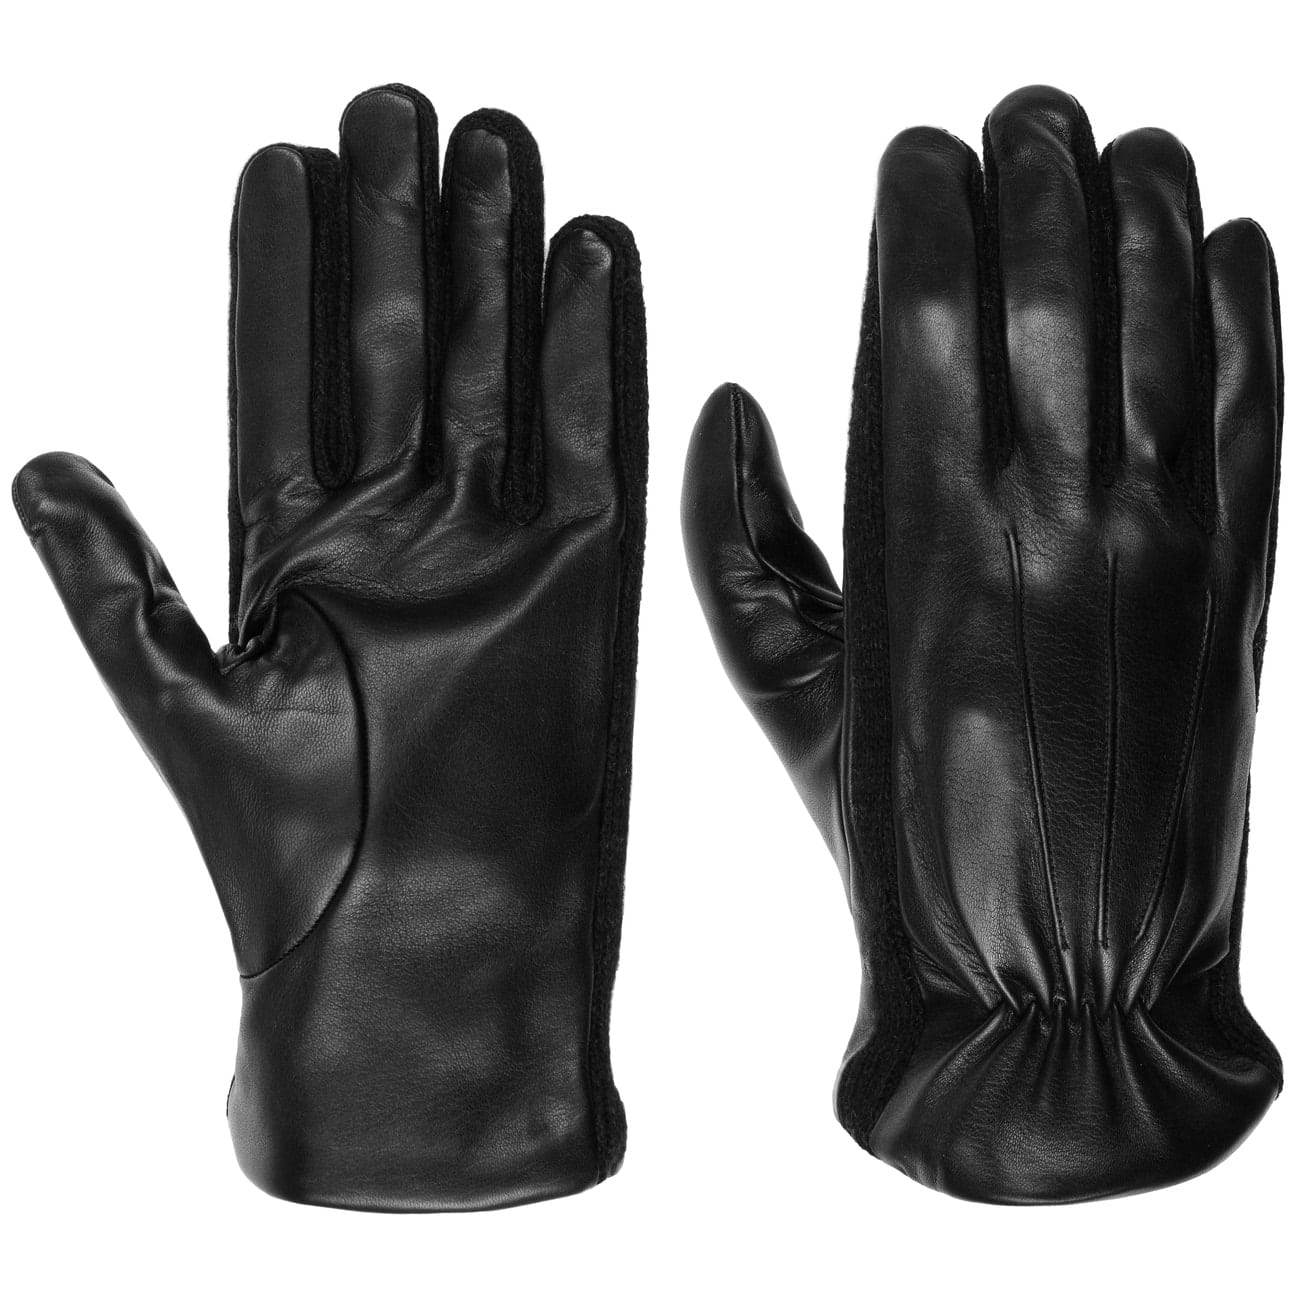 Gants Pour Homme Nappa by Caridei